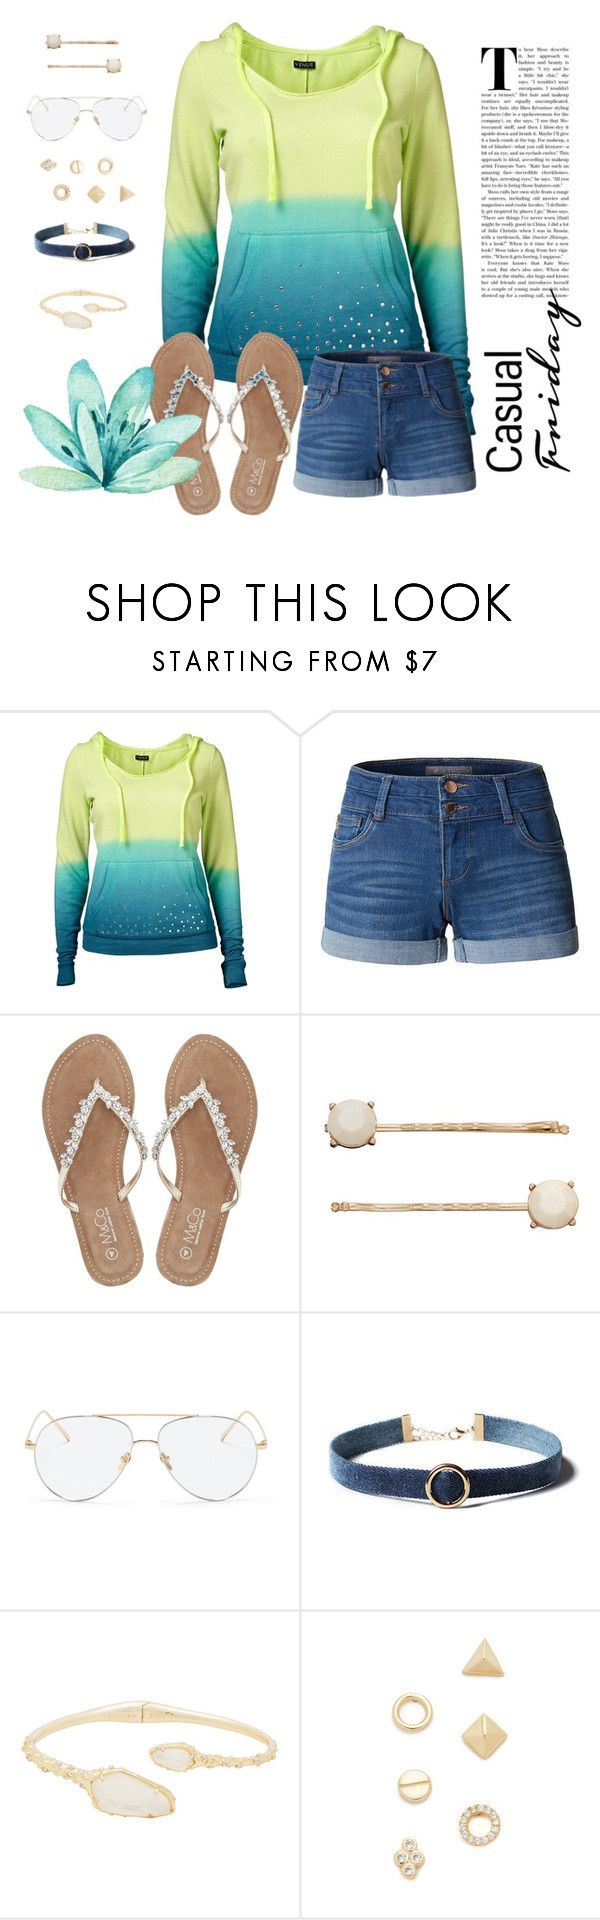 """Untitled #47"" by corliss-b on Polyvore featuring Venus, LE3NO, M&Co, LC Lauren Conrad, Linda Farrow Vintage, WithChic, Kendra Scott and Shashi"